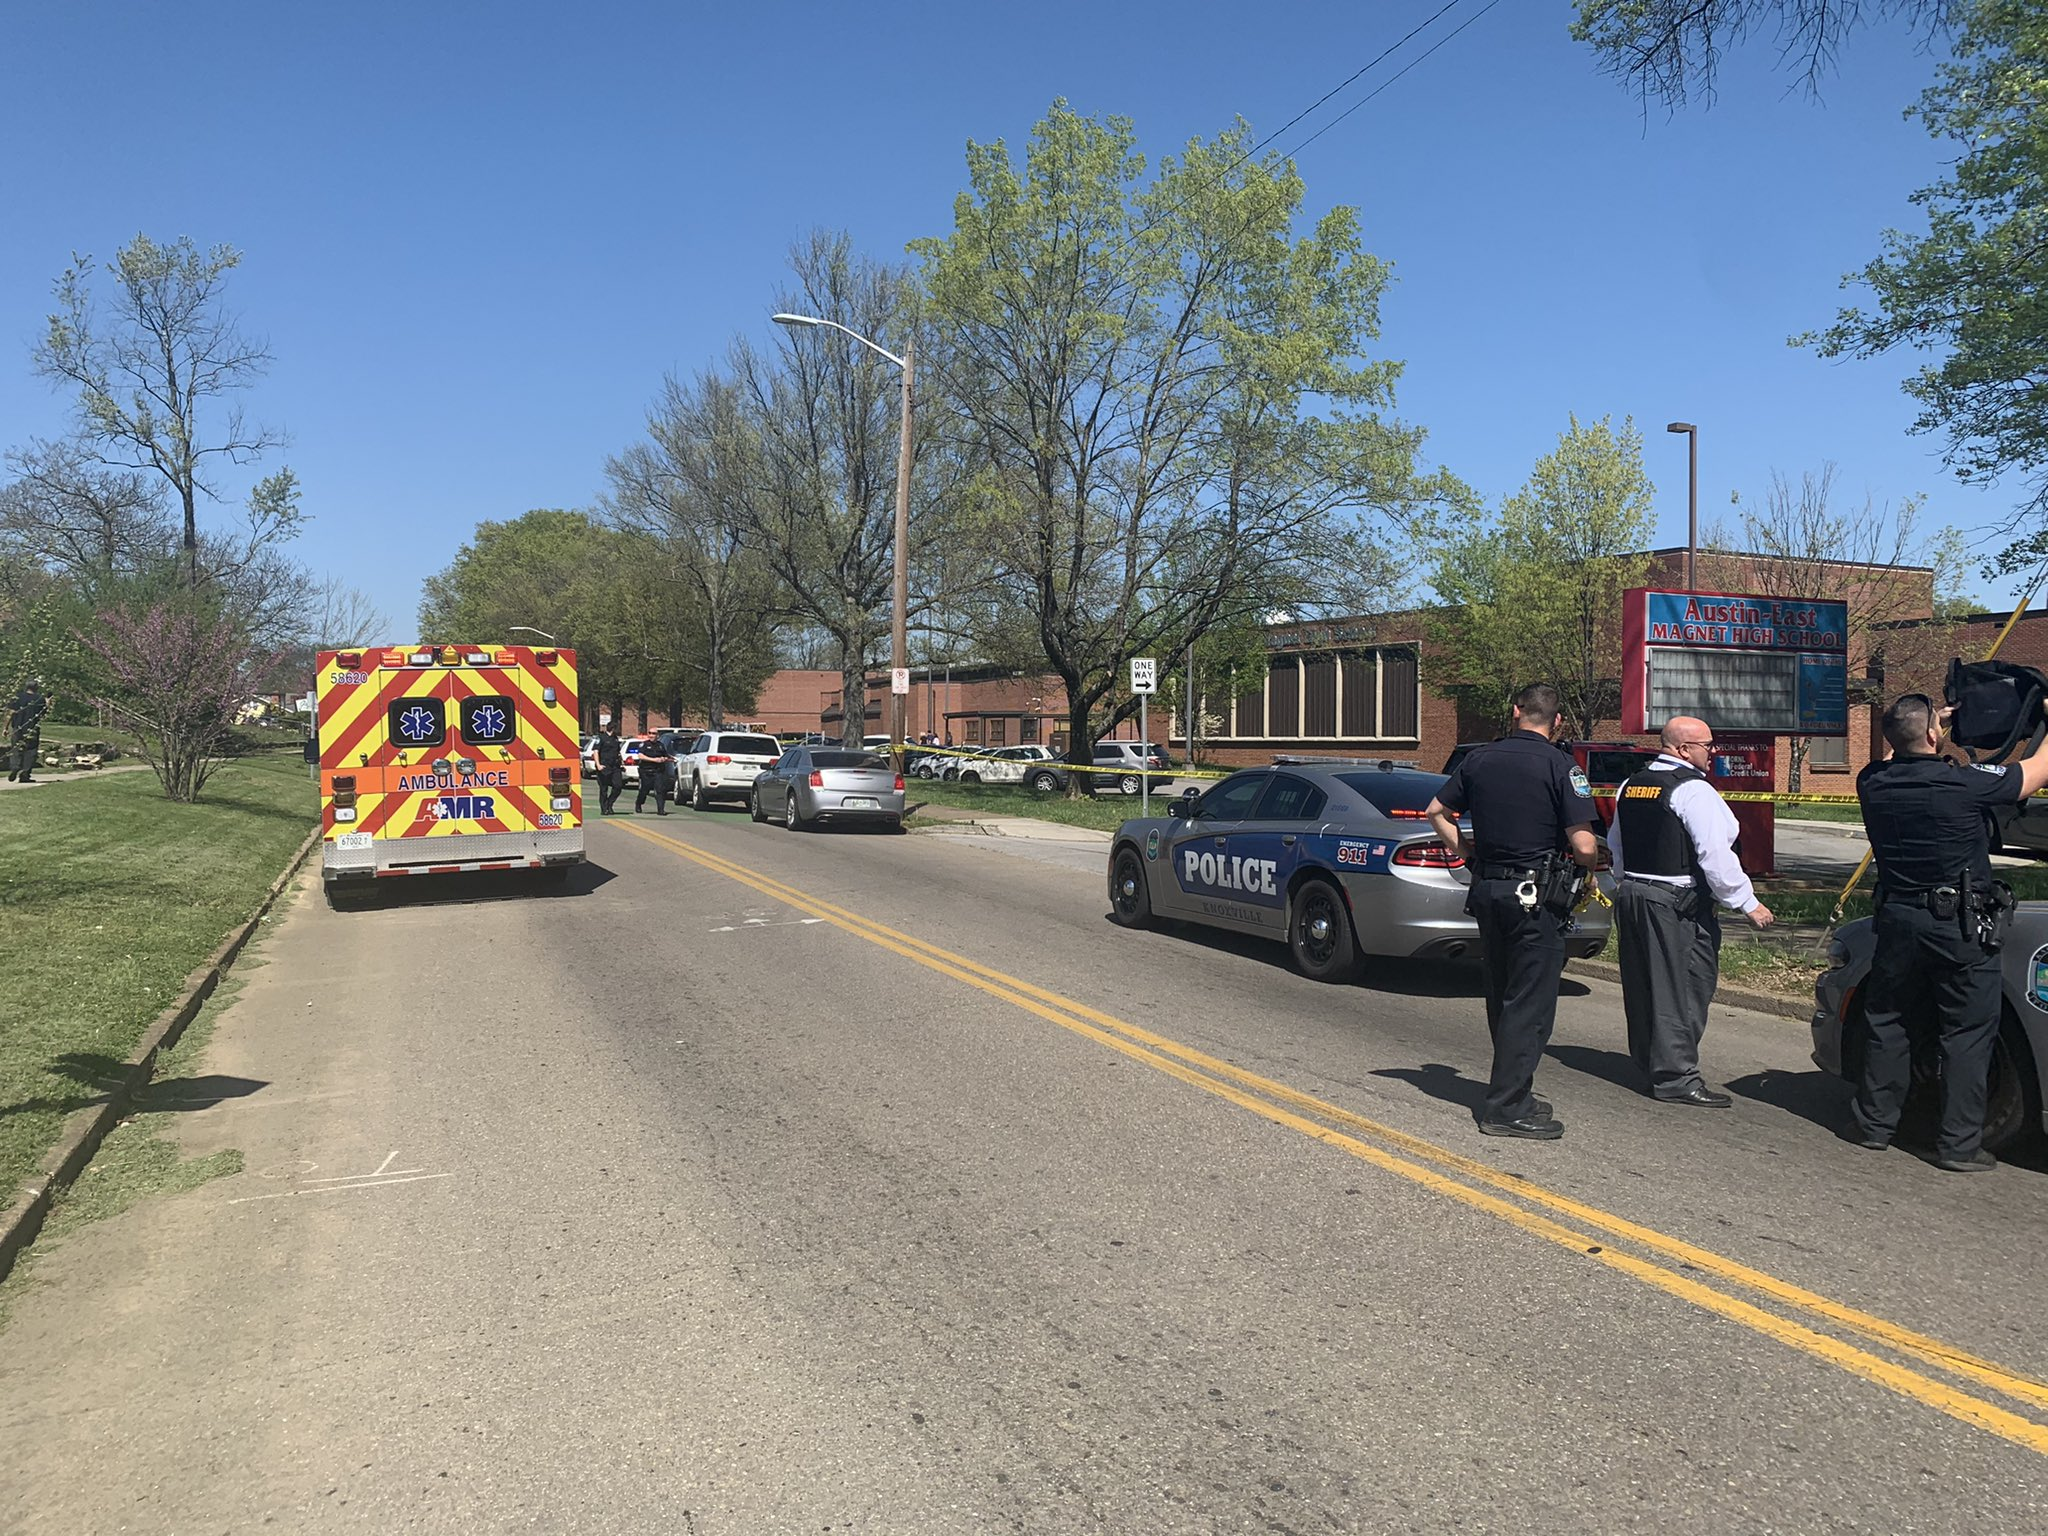 The scene outside Austin-East Magnet High School in Knoxville, Tennessee, April 12, 2021, in this photo posted to Twitter by Knoxville Police. Handout via REUTERS